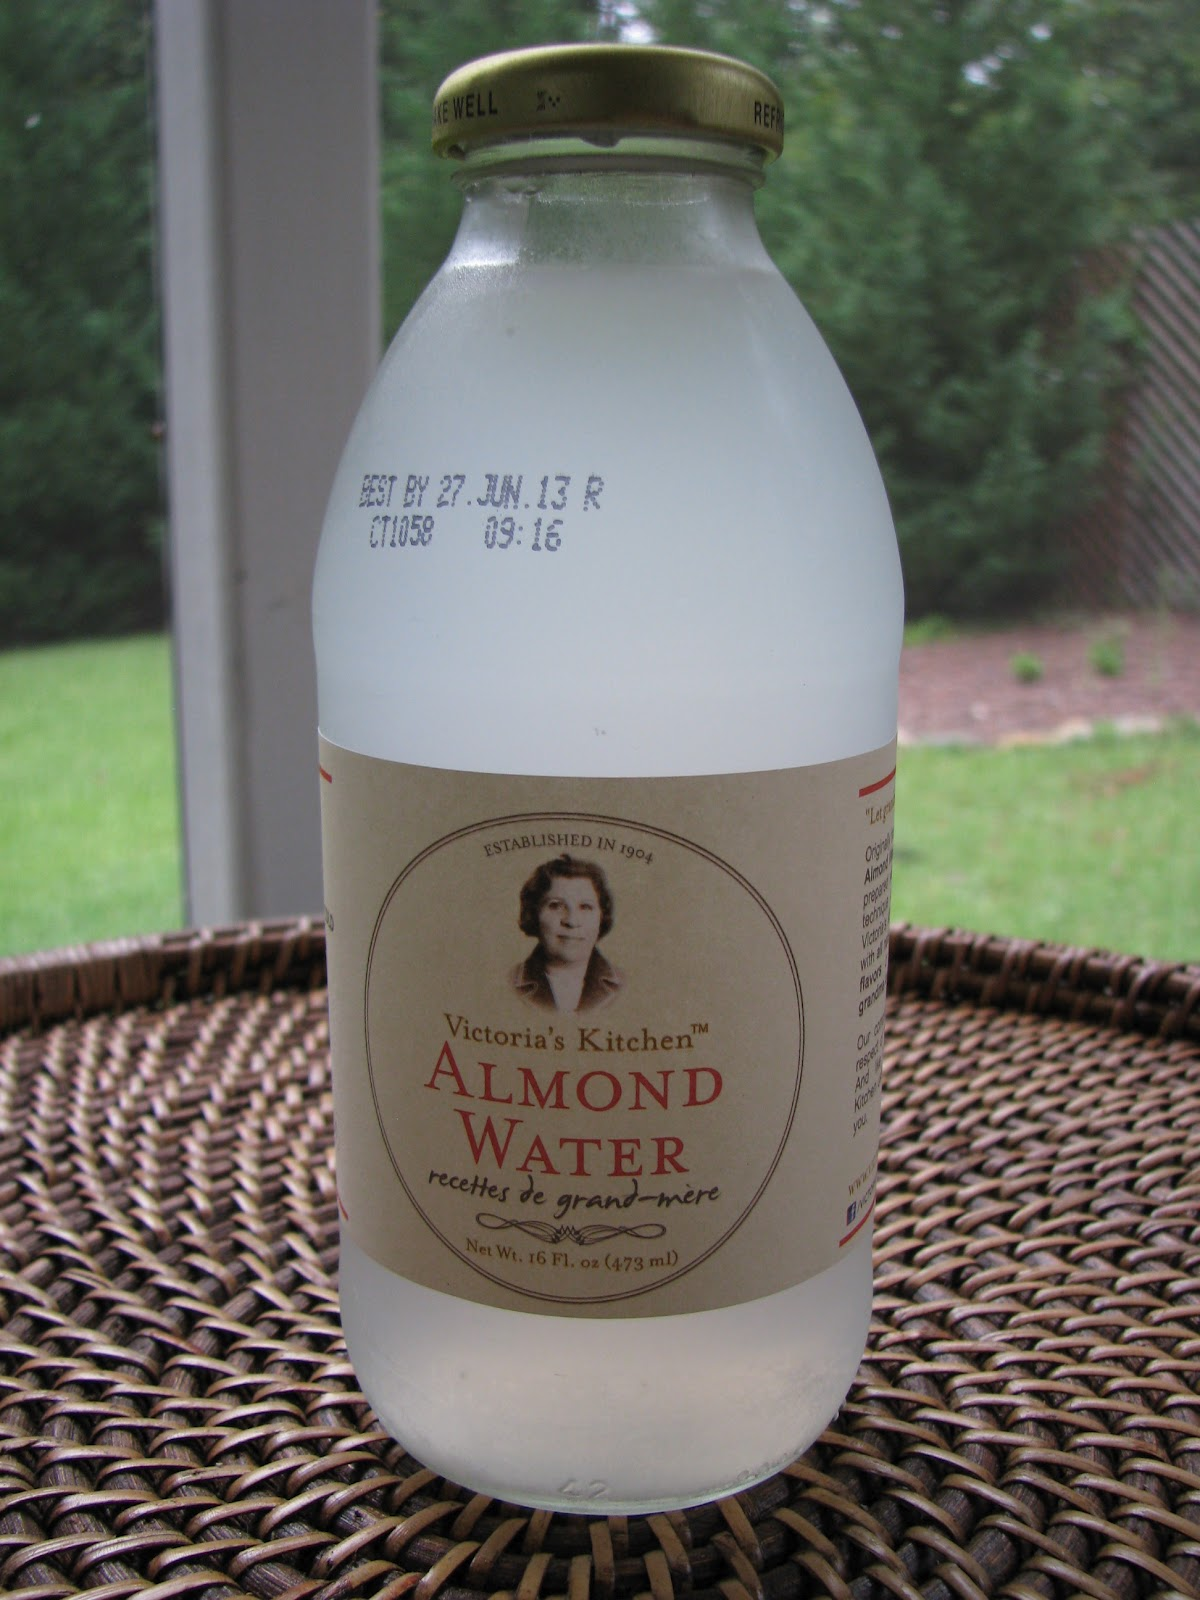 victorias kitchen almond water - Victorias Kitchen Almond Water